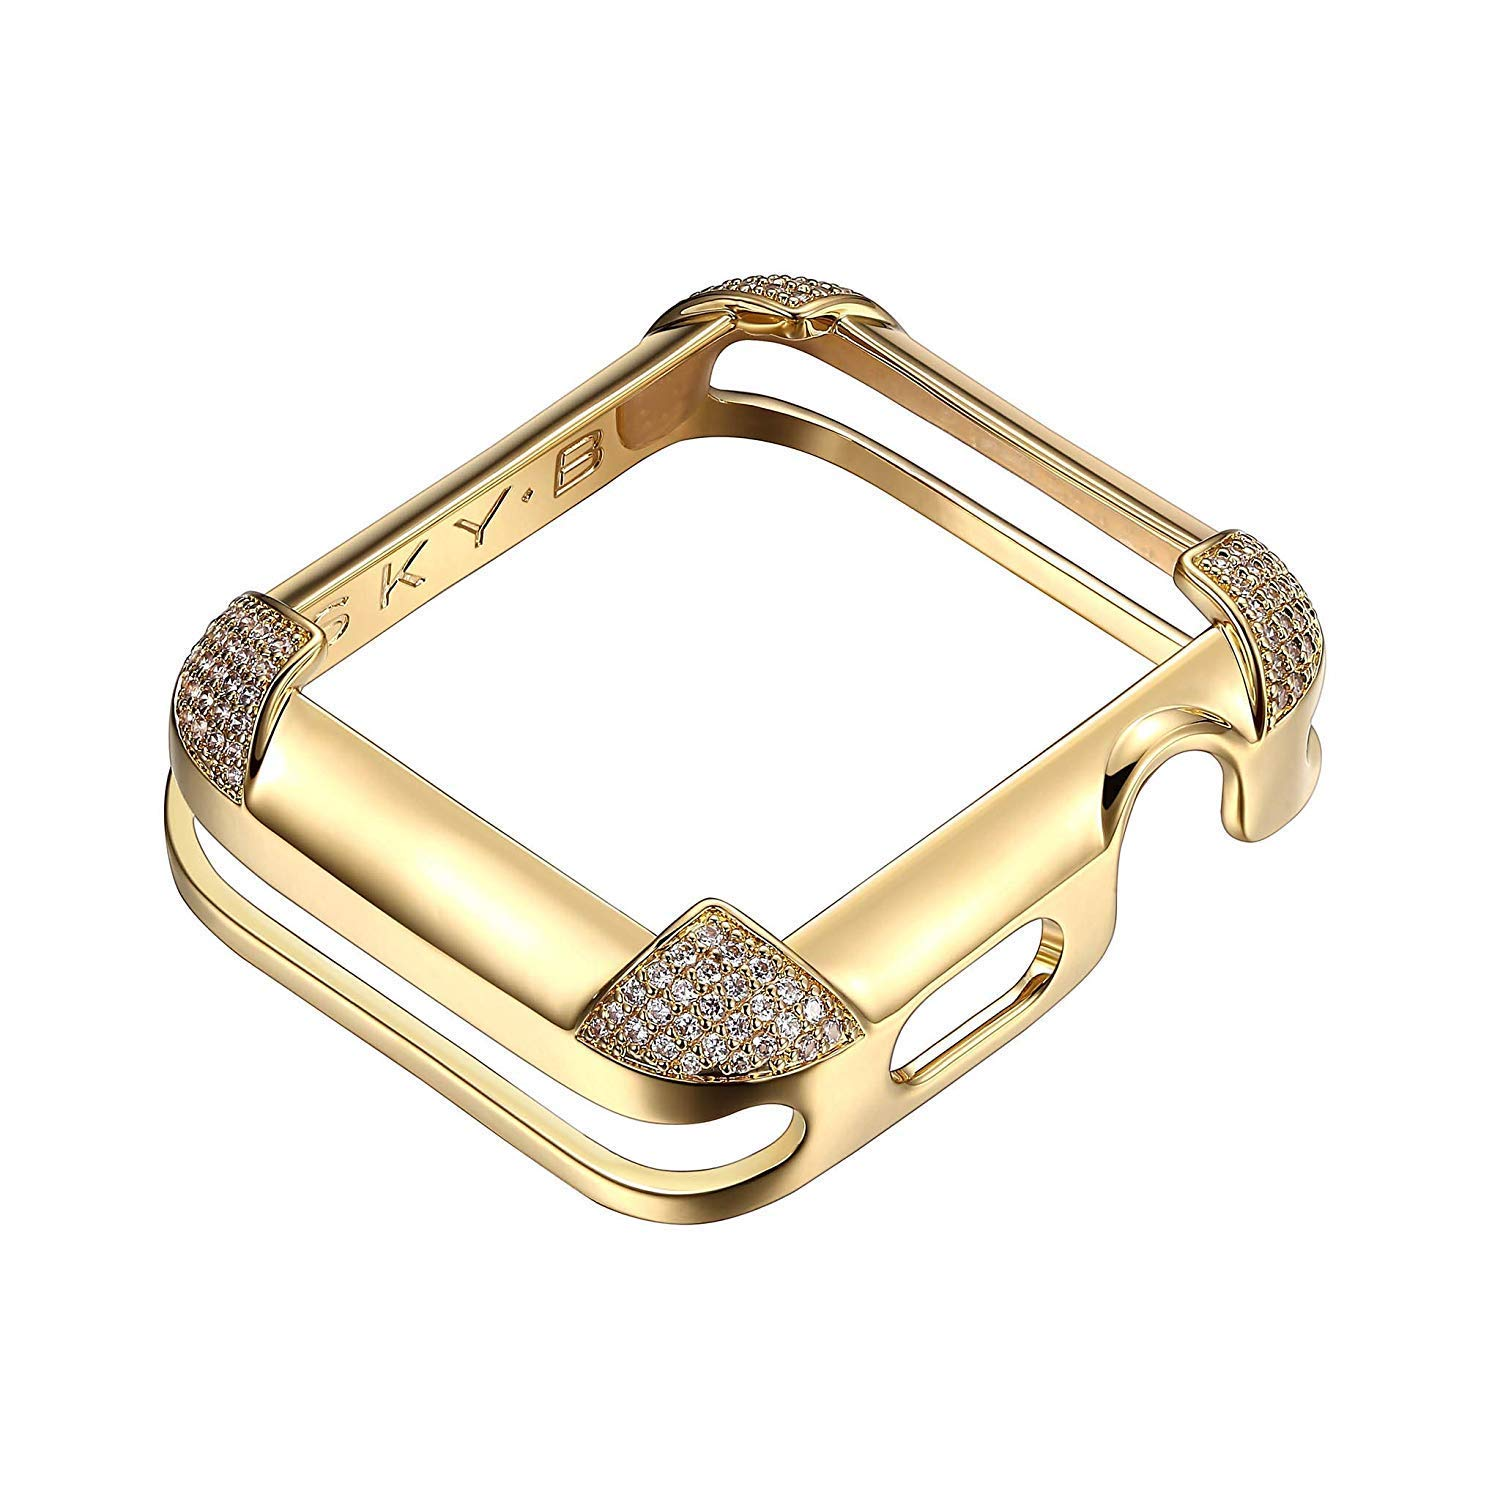 18K Yellow Gold Plated Jewelry-Style Apple Watch Case with Cubic Zirconia CZ Pavé Corners - Medium (Fits 40mm Series 4 iWatch) by SKYB